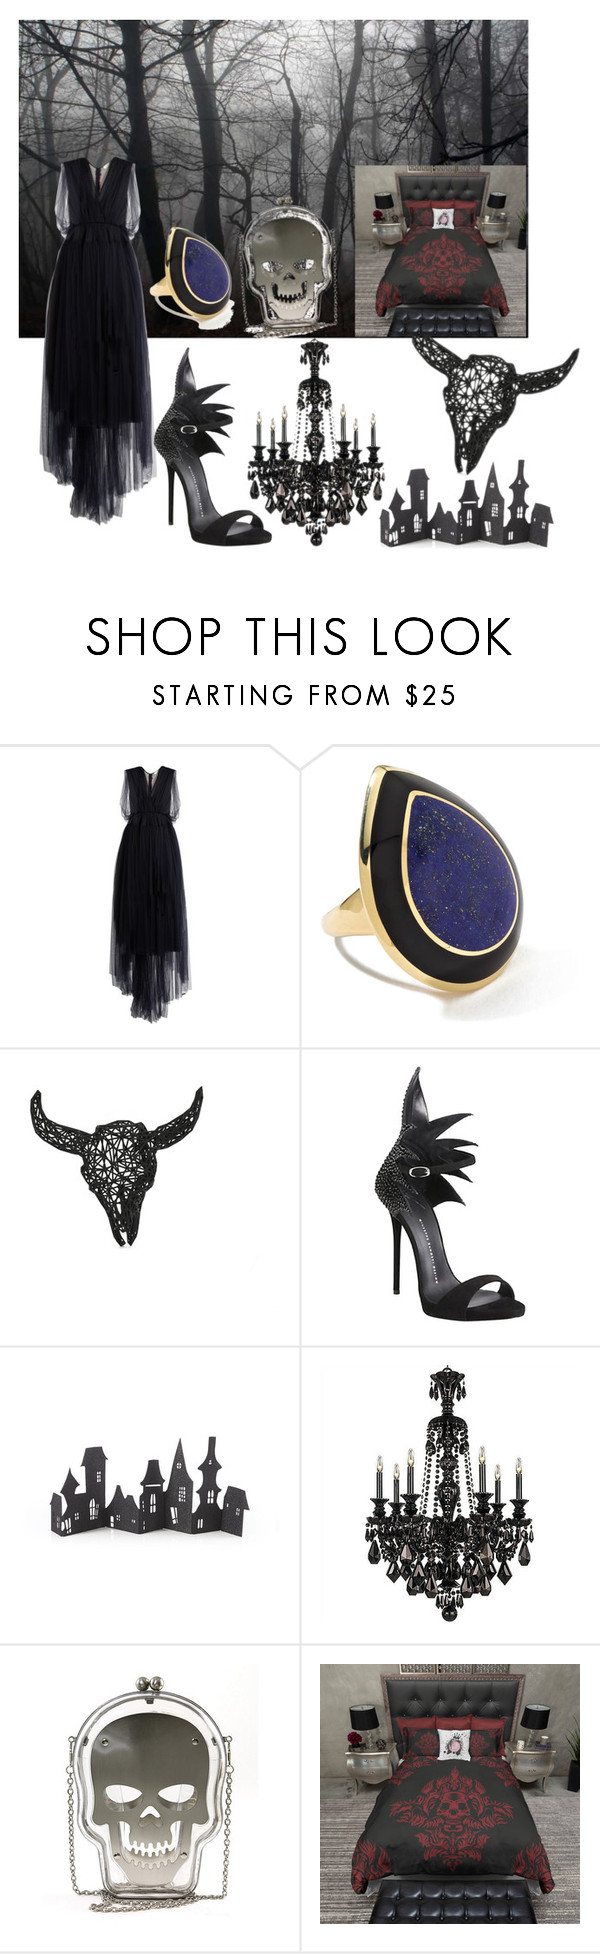 """Dark soul"" by clori86 ❤ liked on Polyvore featuring Delpozo, Ippolita, Giuseppe Zanotti, Crate and Barrel and darksoul"